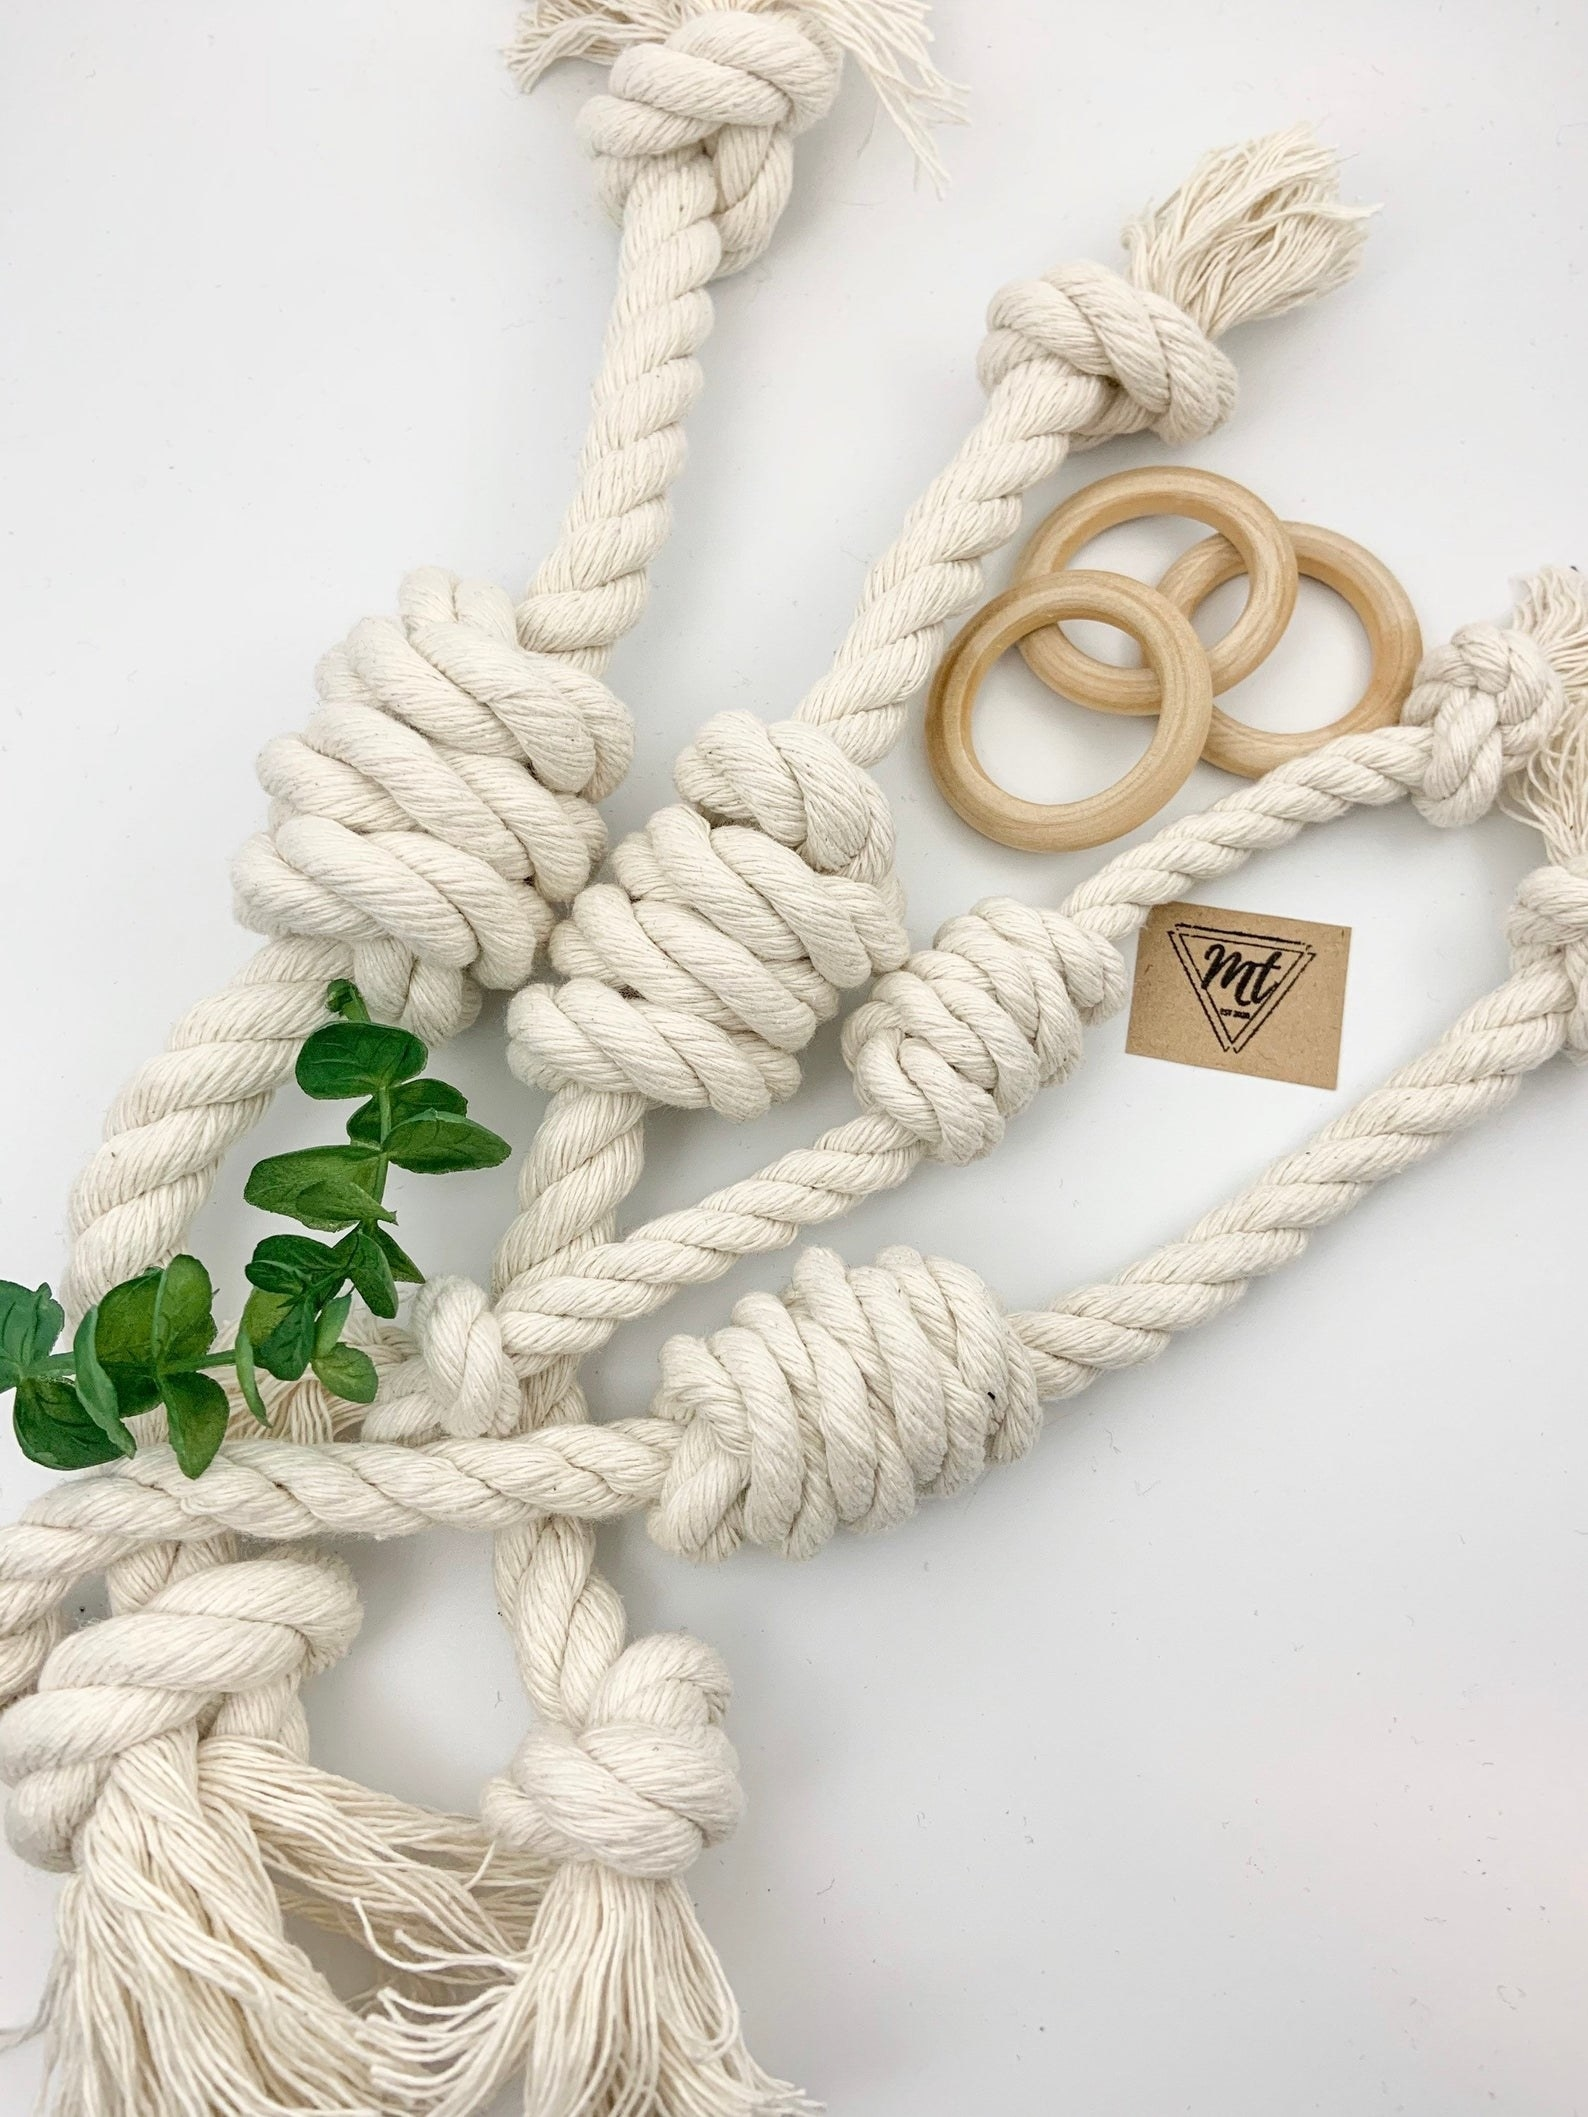 The knotted rope toy